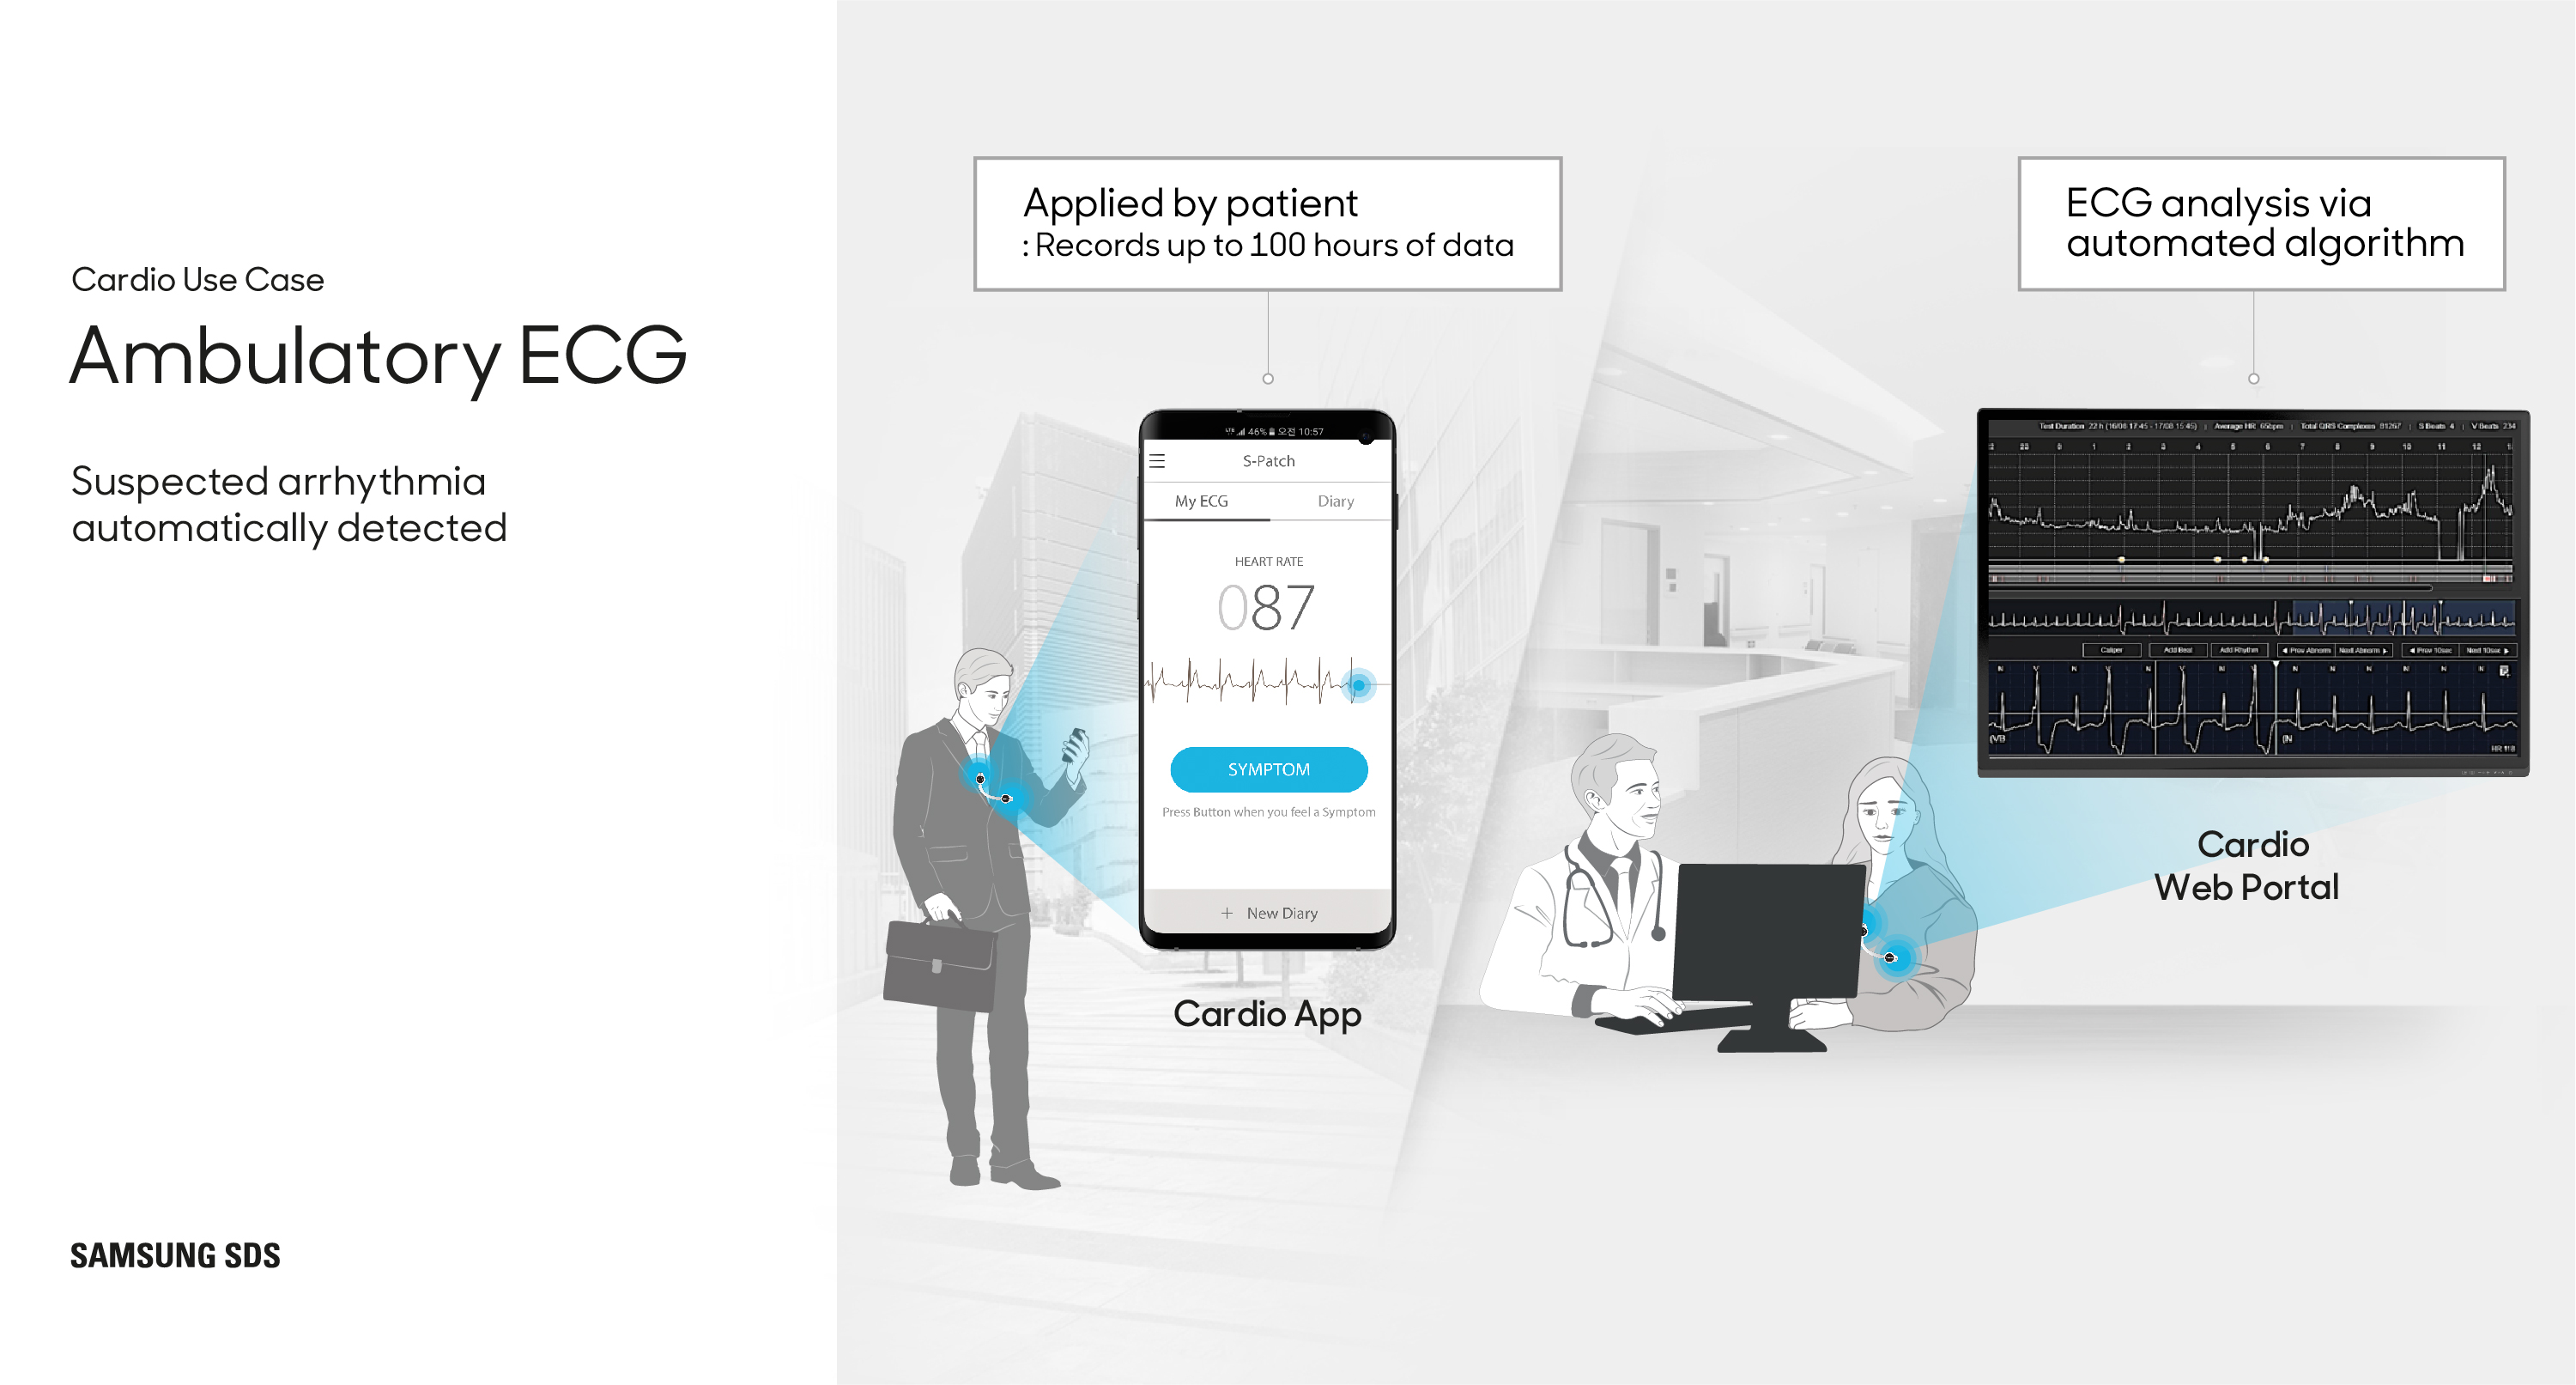 Lightweight wearable ECG devices allow this low cost, easy to adopt solution to be applied to outpatient arrhythmia diagnosis. This solution's convenience even allows small primary doctor offices to perform ECG tests without sending patients to large hospitals.